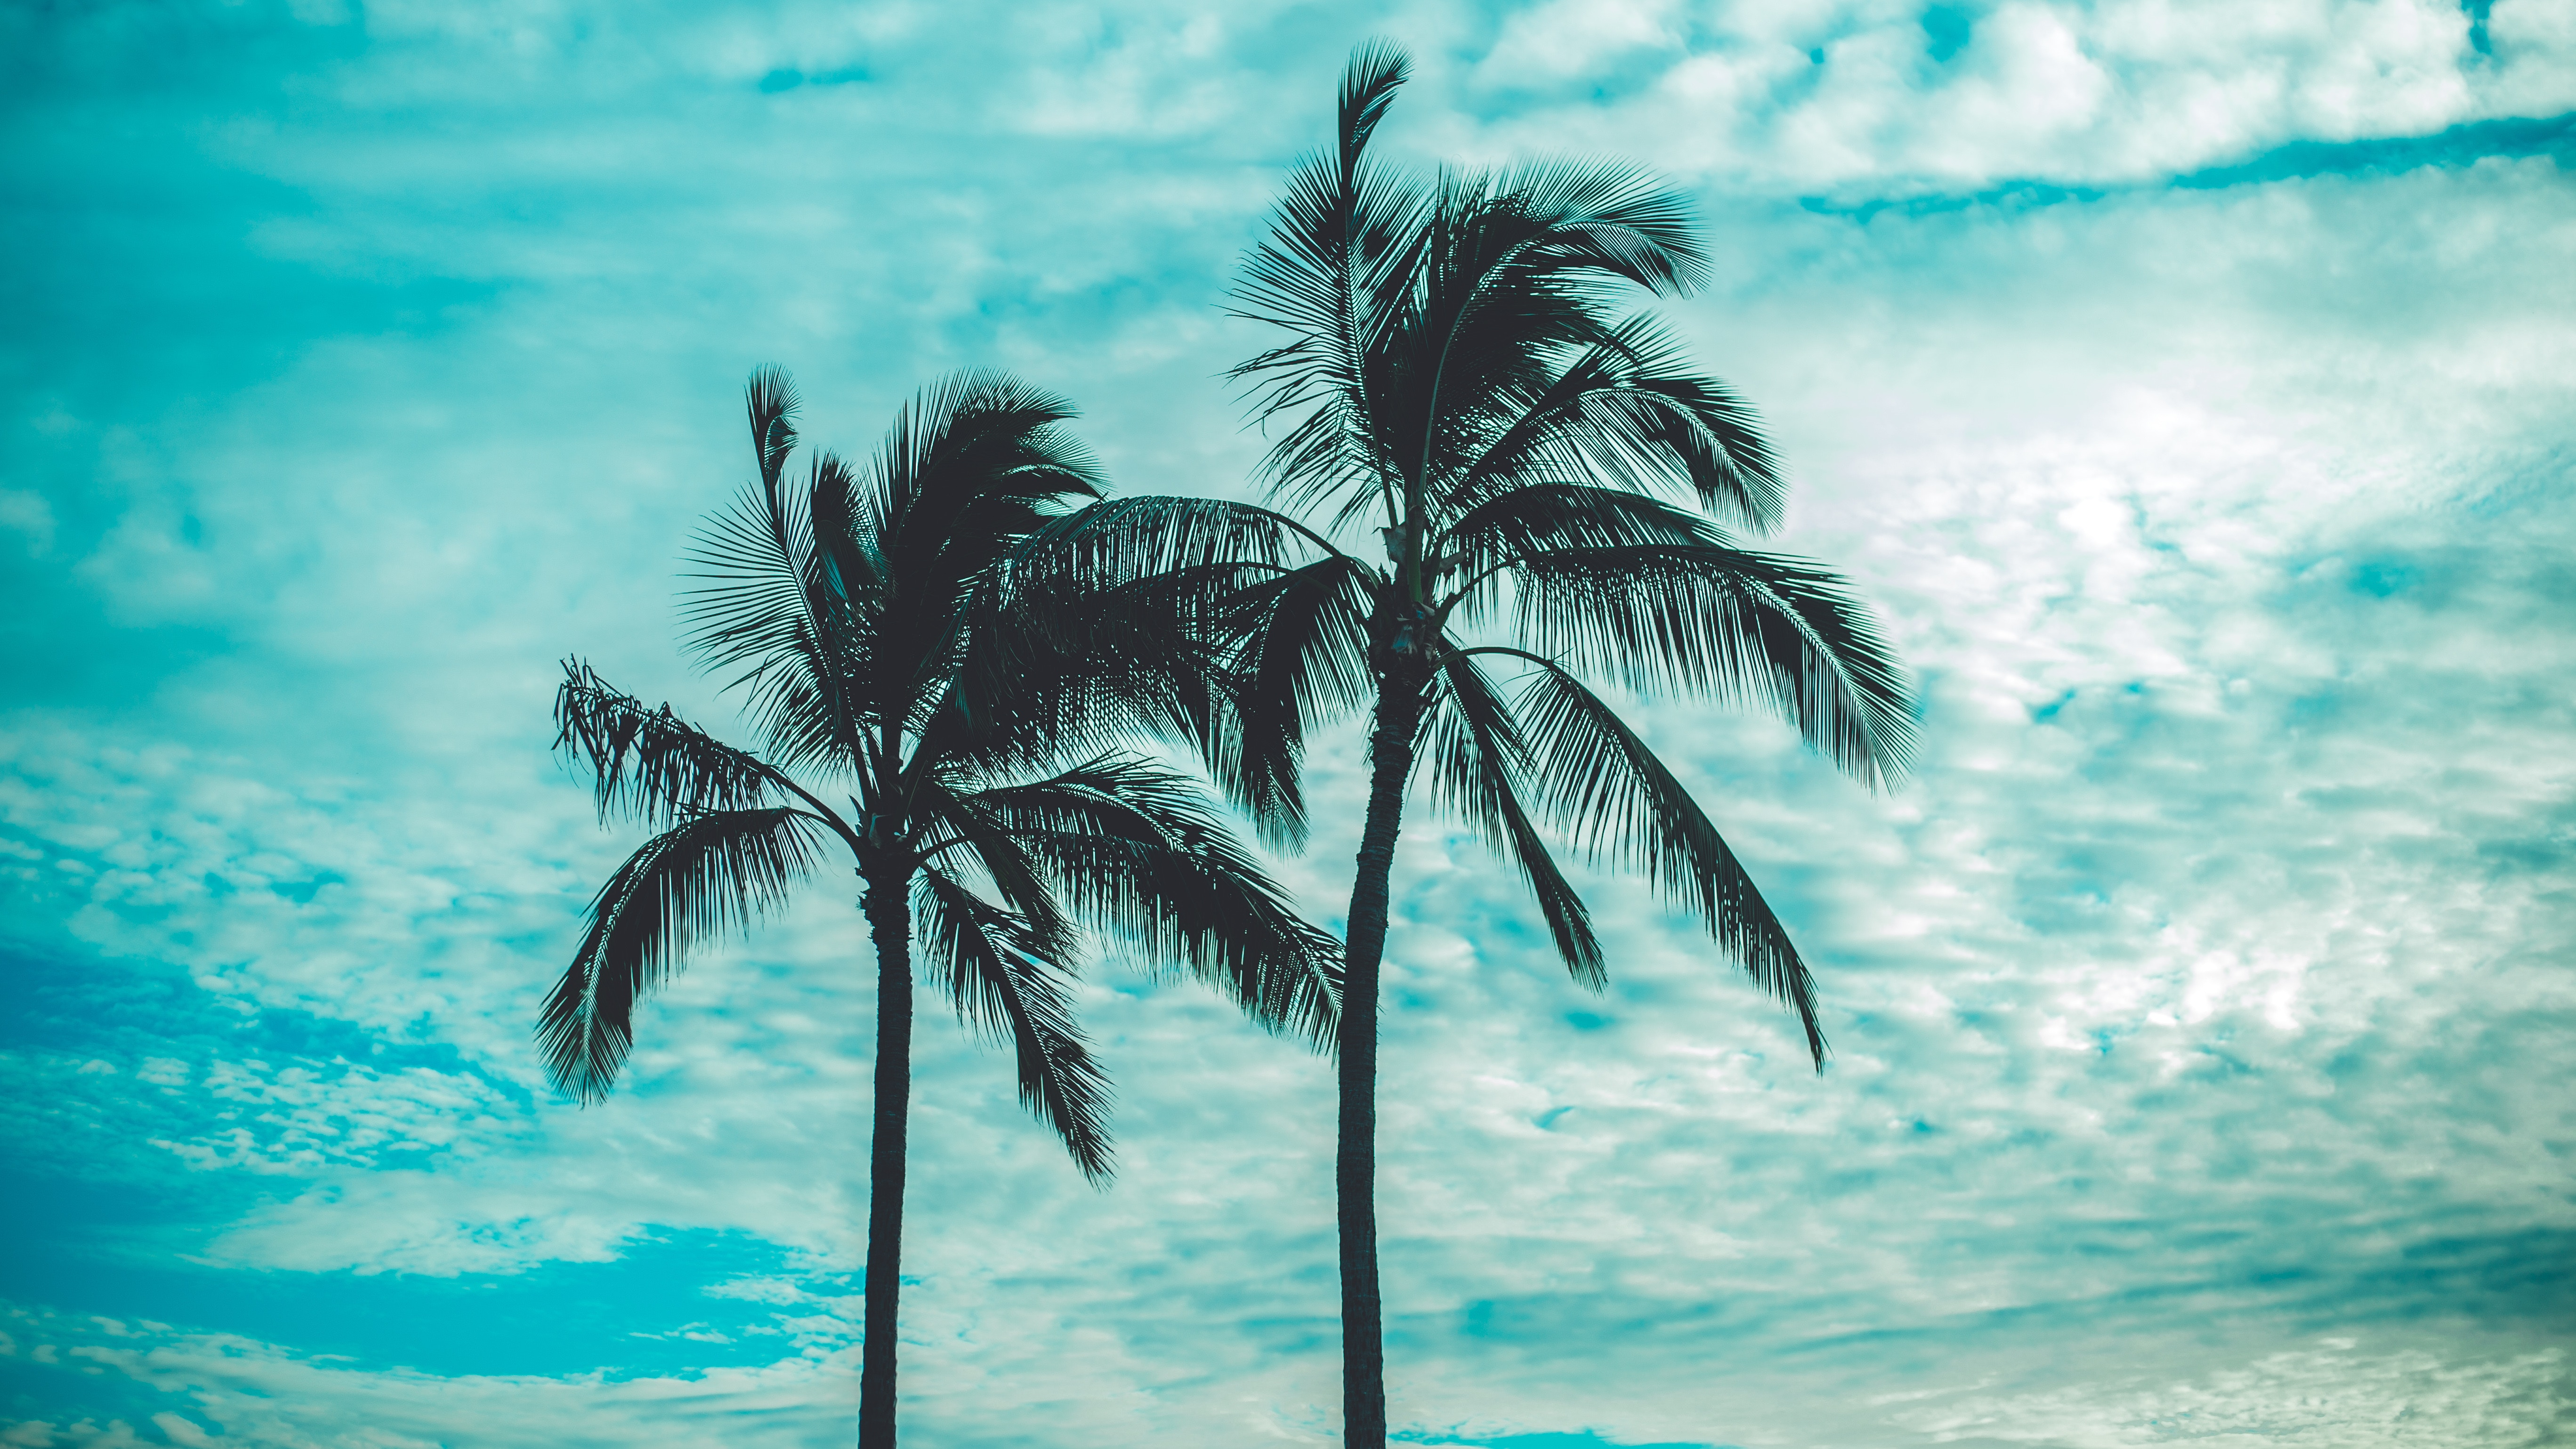 156286 download wallpaper Nature, Tops, Top, Sky, Clouds, Trees, Tropics, Palms screensavers and pictures for free